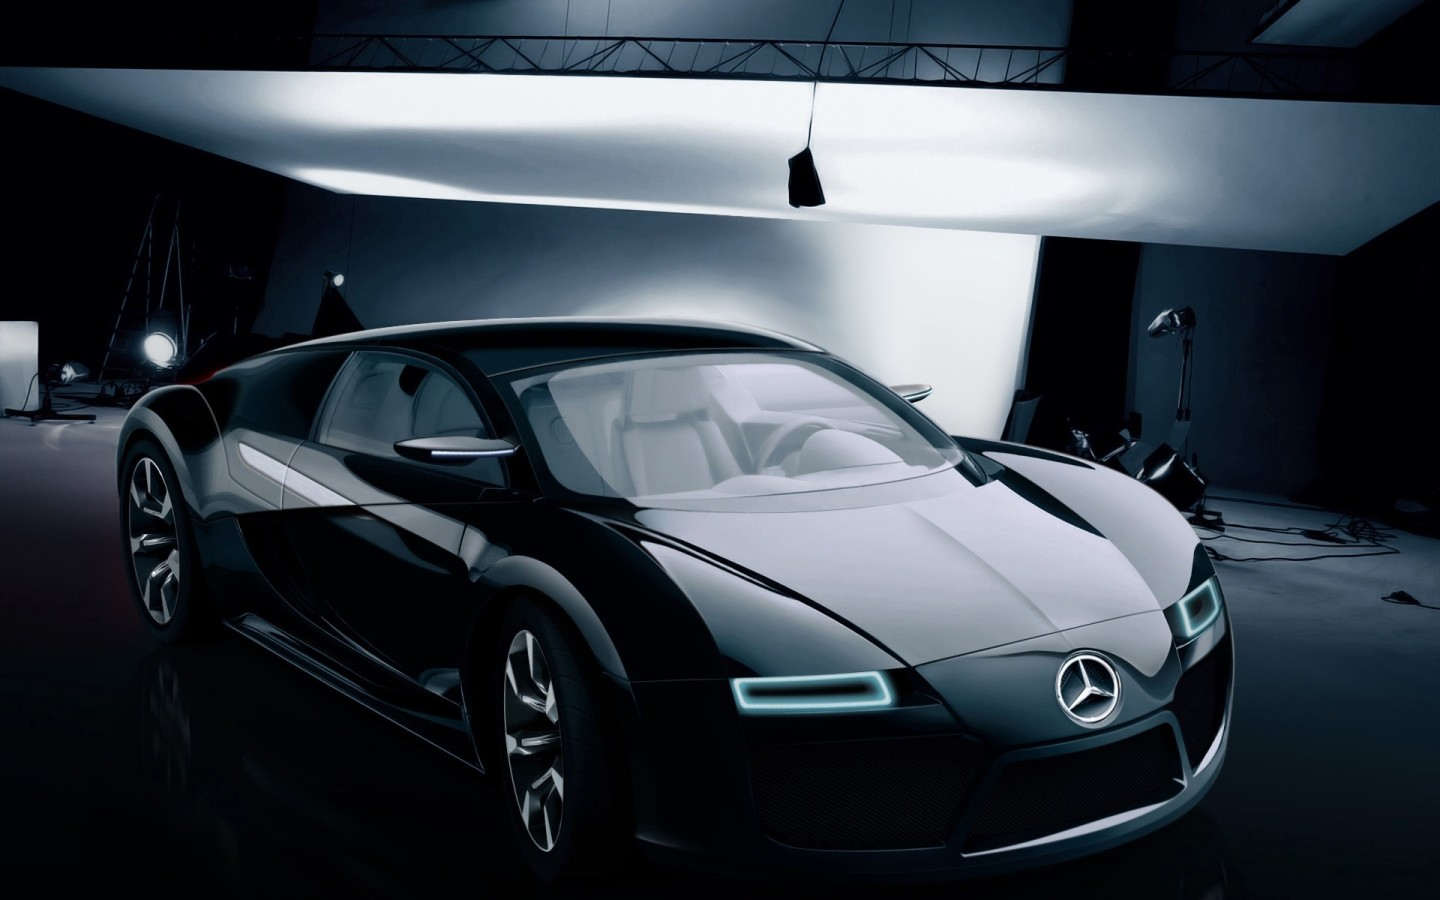 Bmw Hd Wallpaper For Laptop Mercedes Benz Bugatti Concept Wallpaper Hd Car